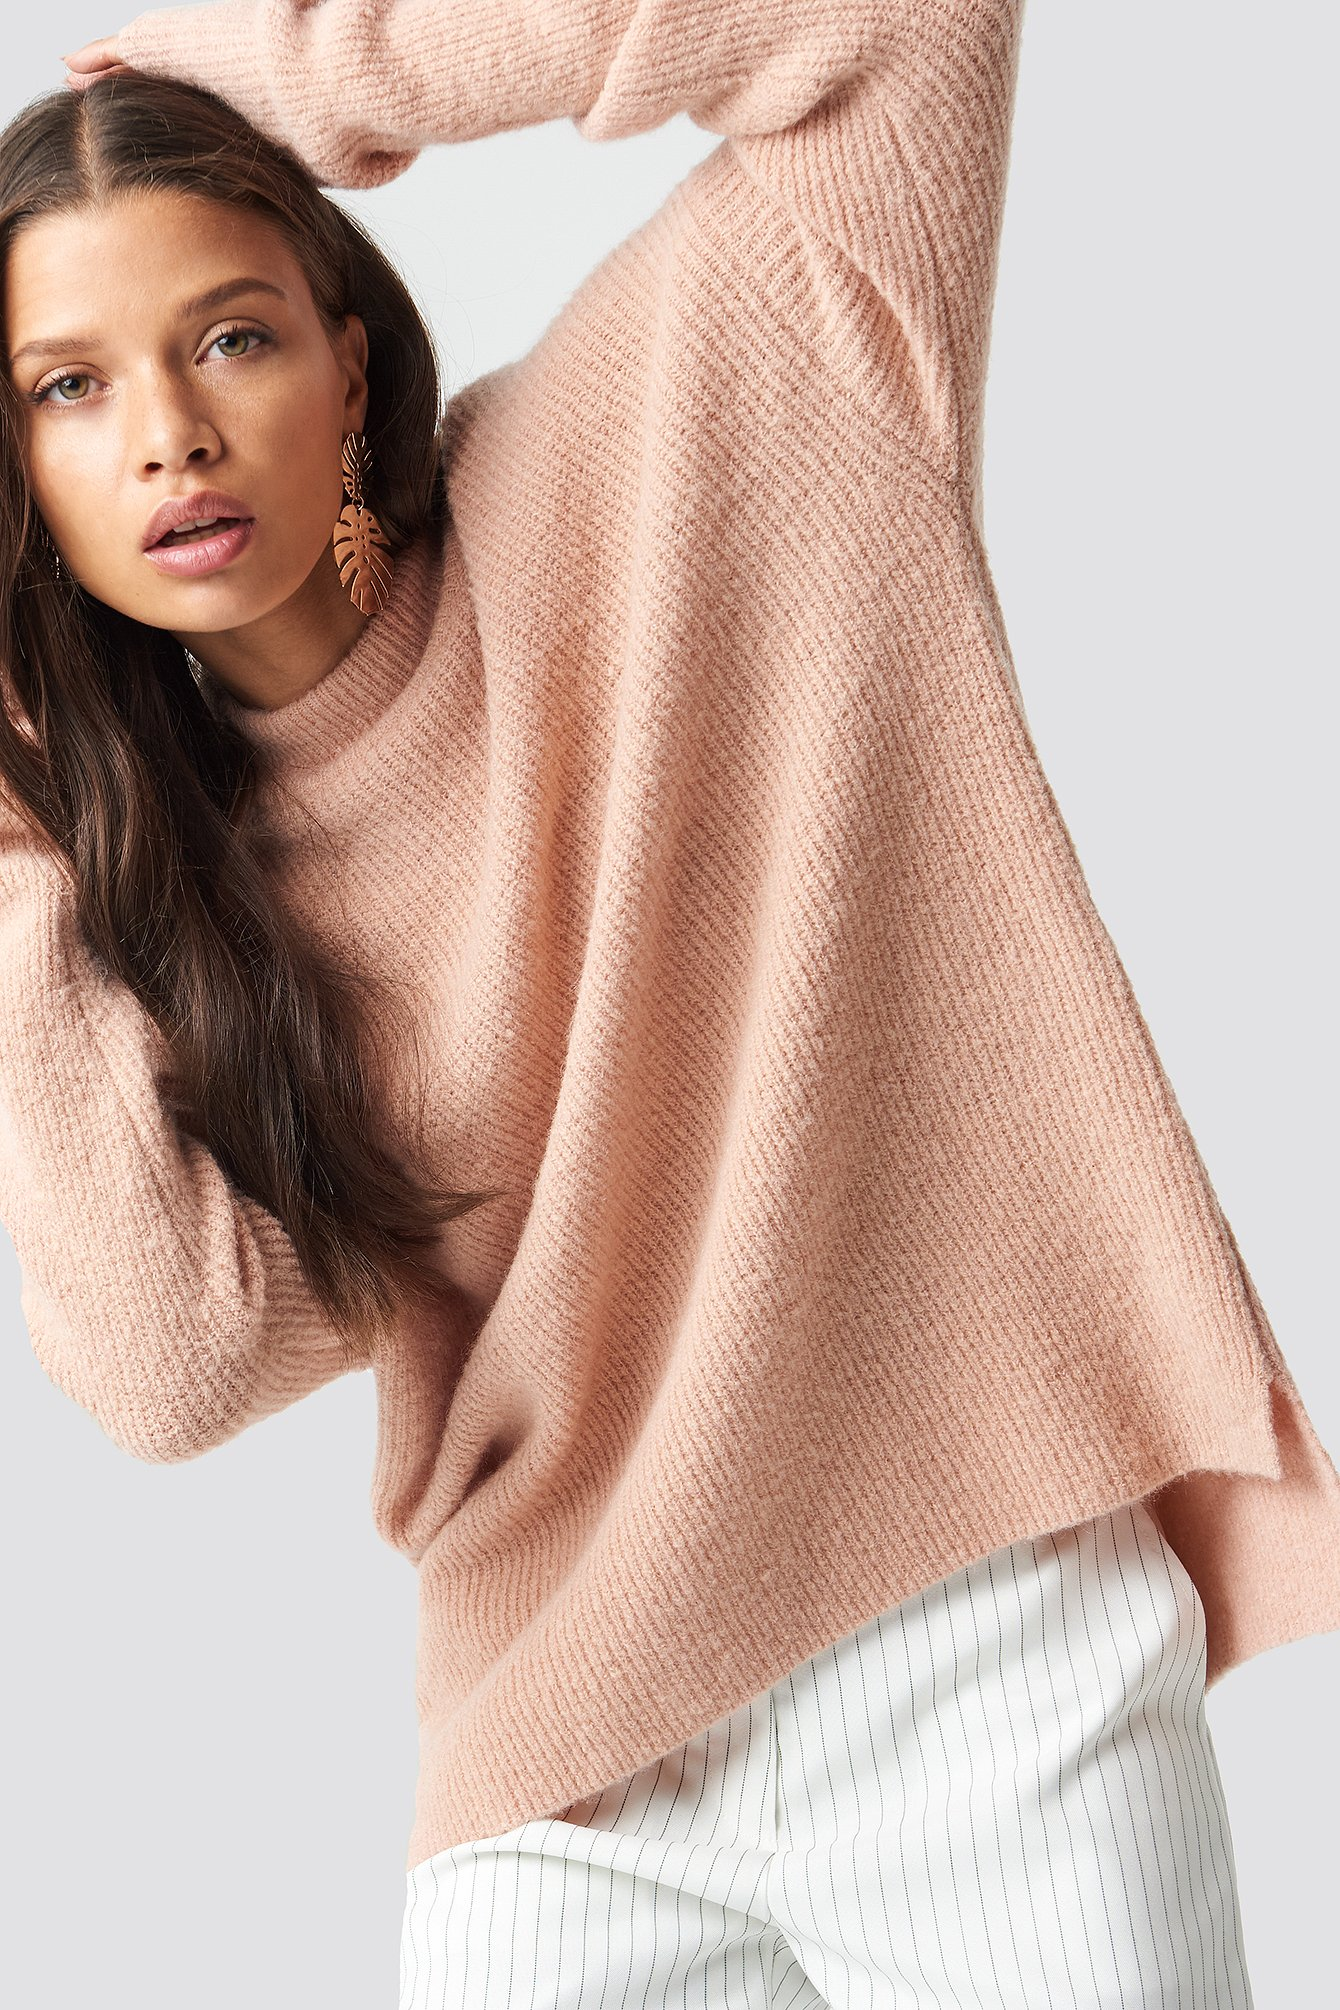 sparkz -  Liepa Pullover - Pink